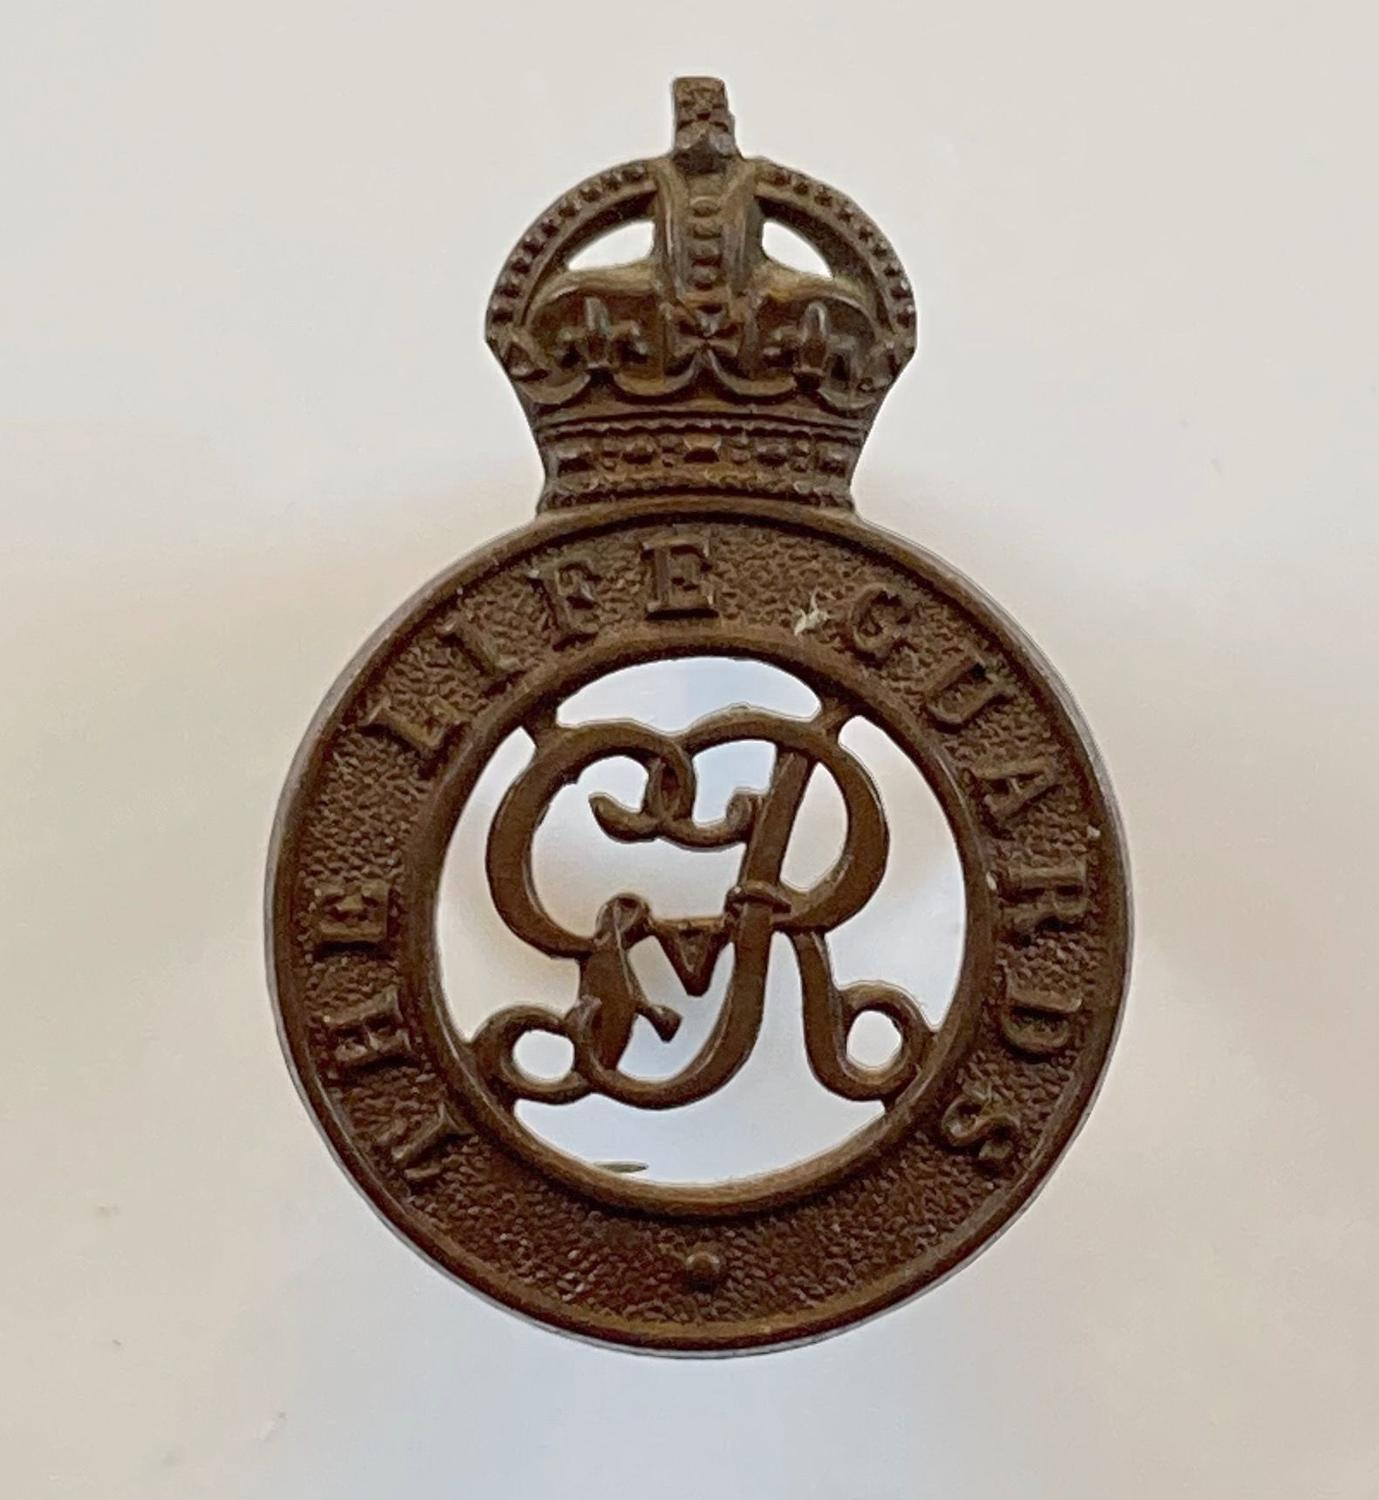 The Life Guards rare GvR OSD bronze cap badge